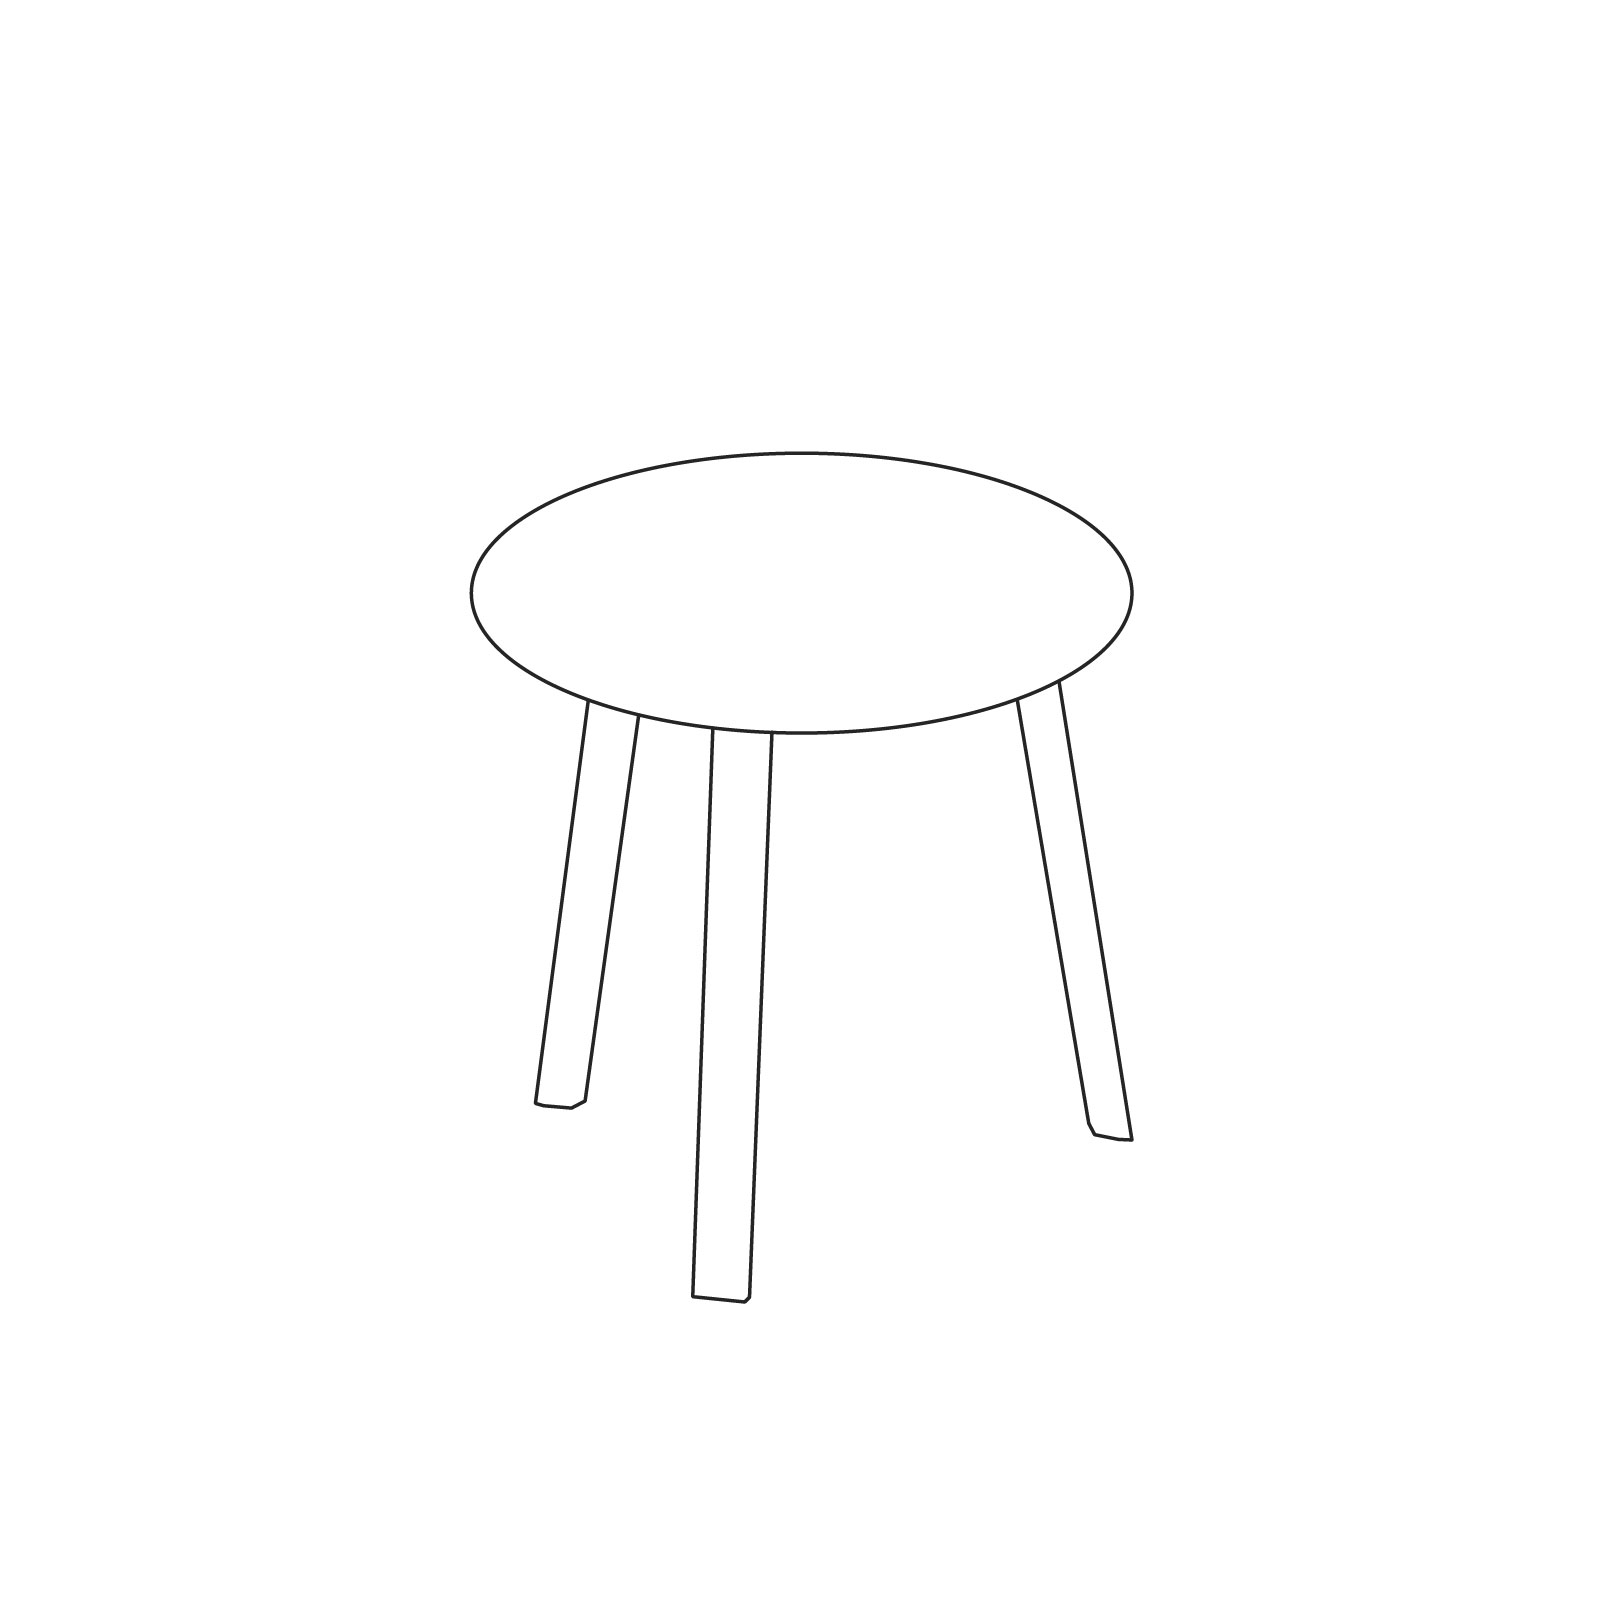 A line drawing of Bella Side Table–High.